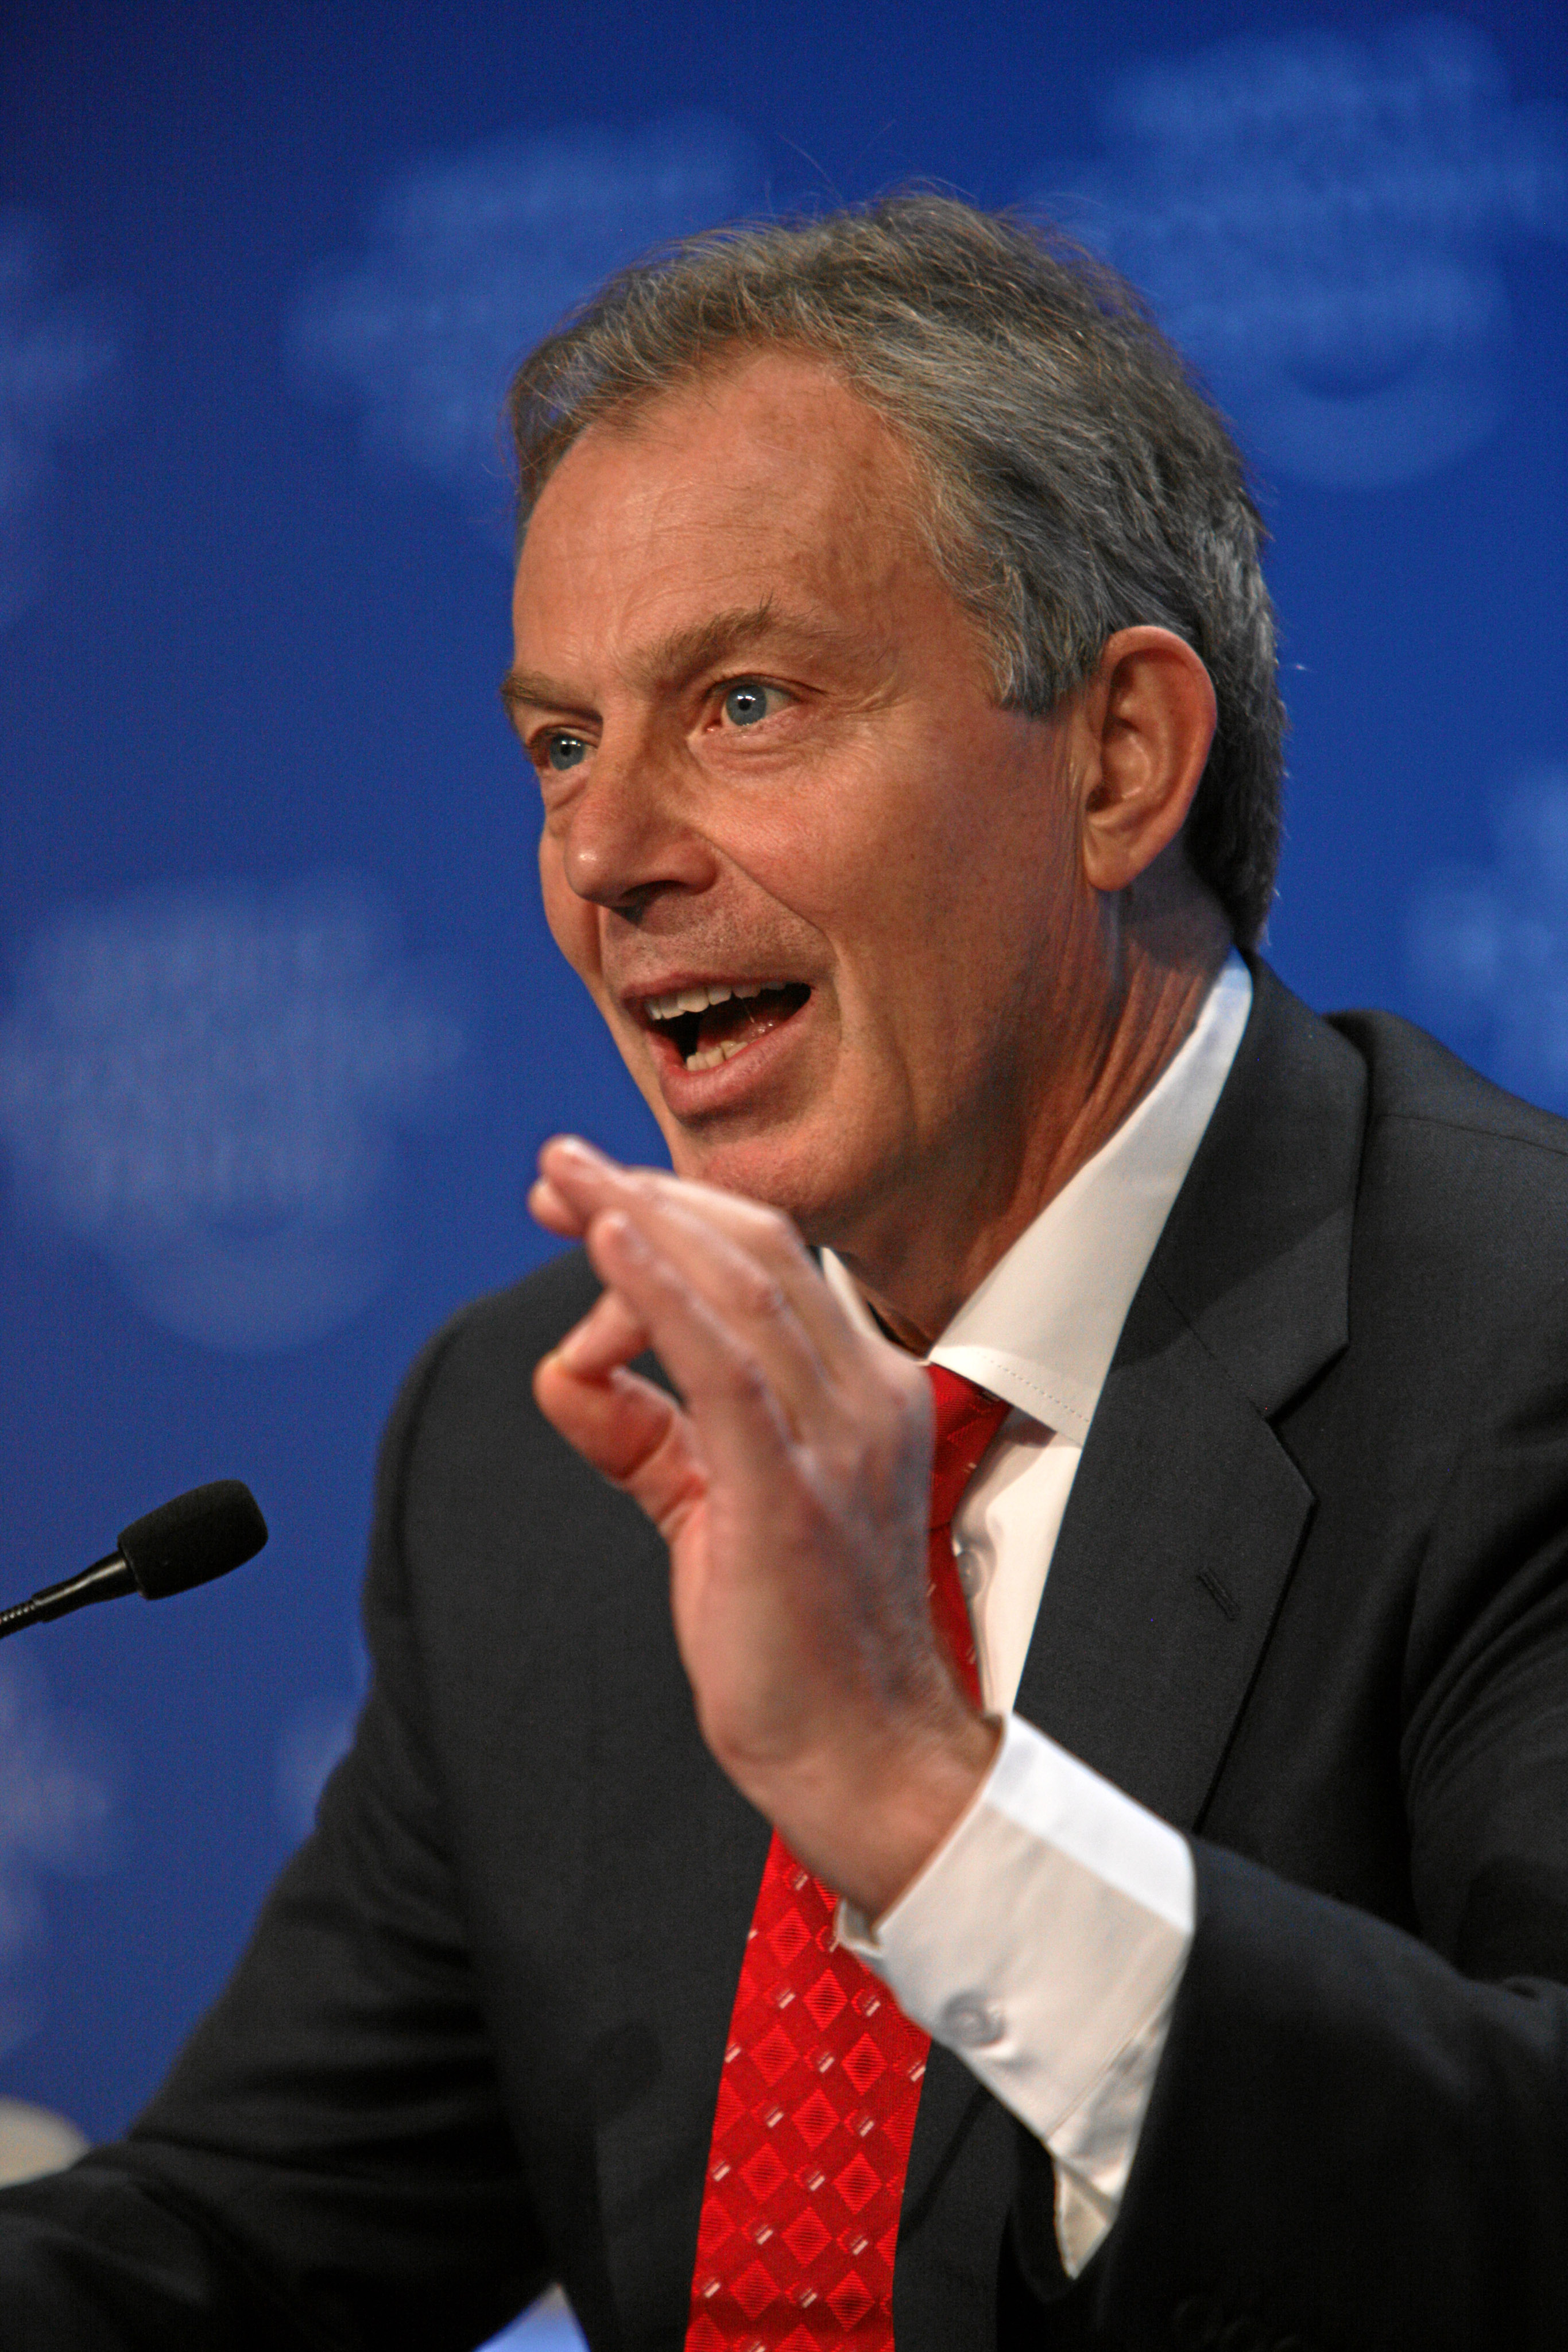 A photograph of a man with greying hair speaking into a microphone and gesturing with his left hand